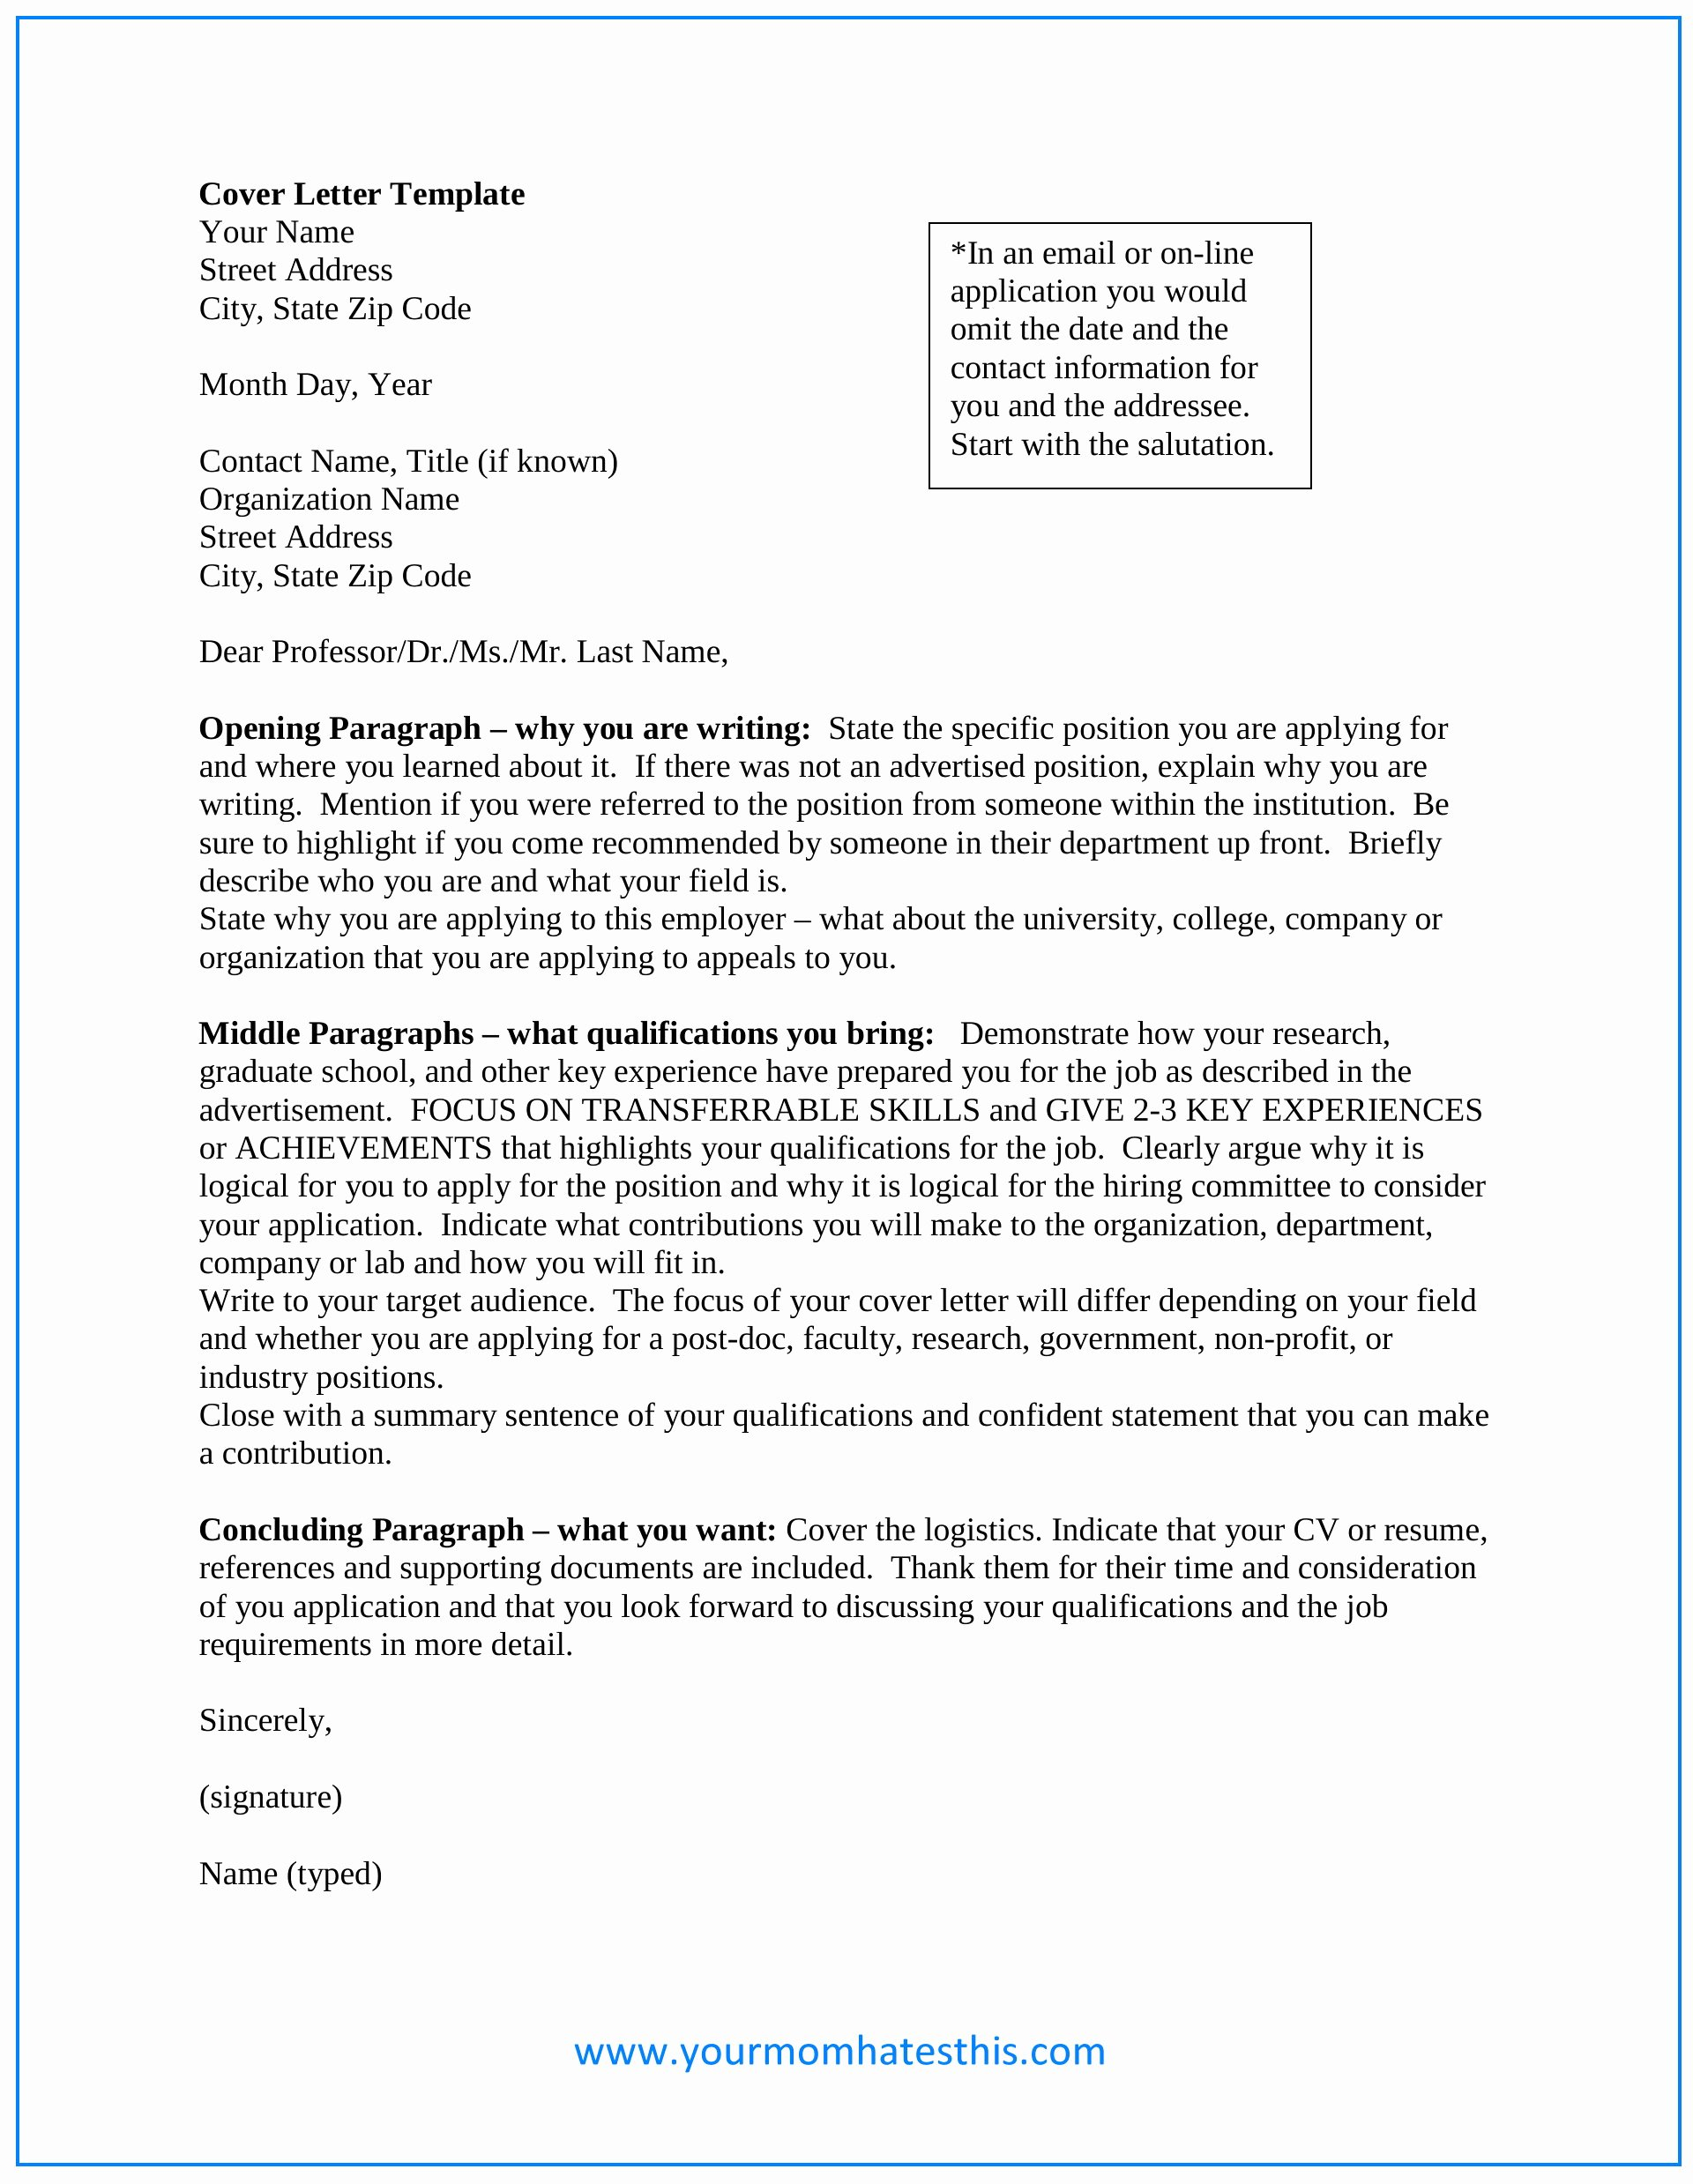 Cover Letter Free Samples Luxury Cover Letter Samples Download Free Cover Letter Templates